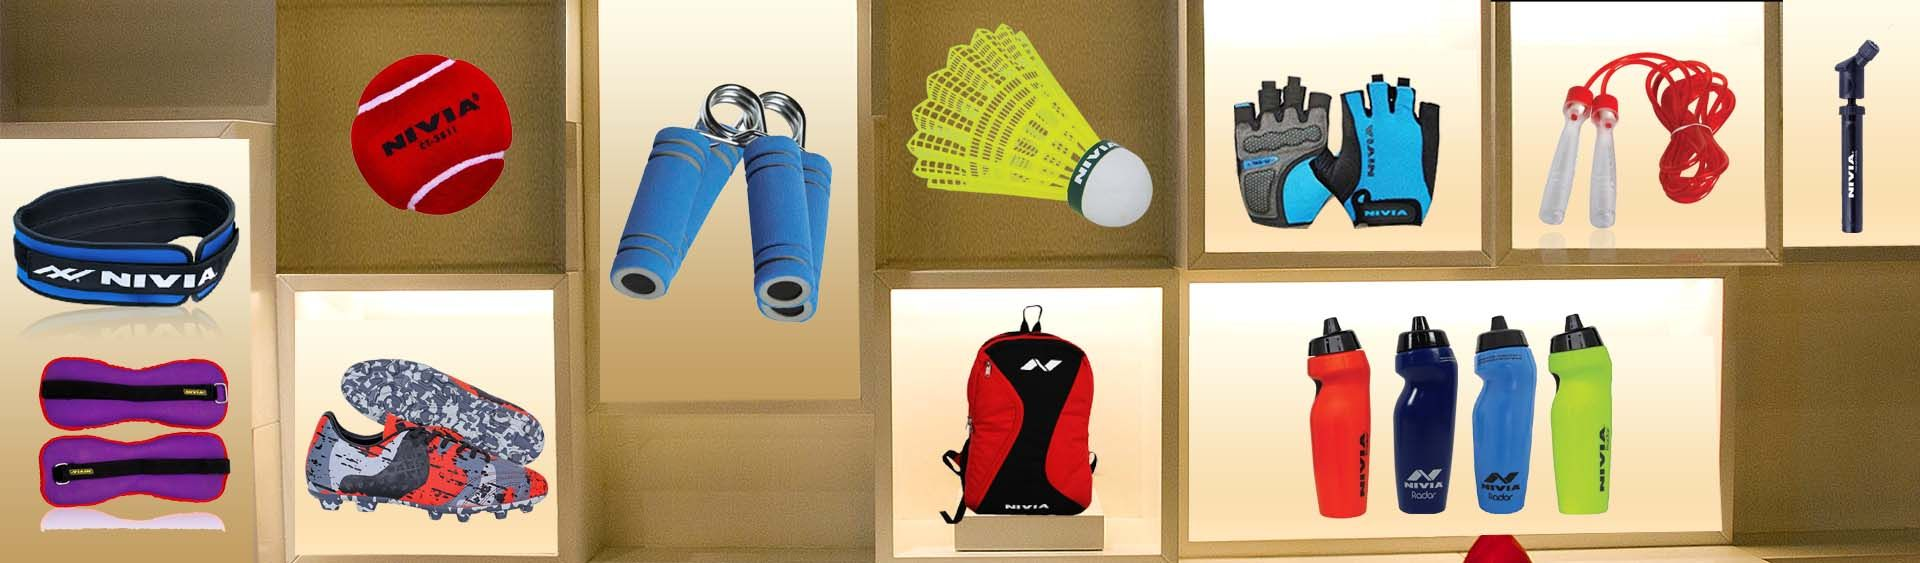 Pin By Adishopkart On Basketball Price In India Cosco Home Decor Shopping